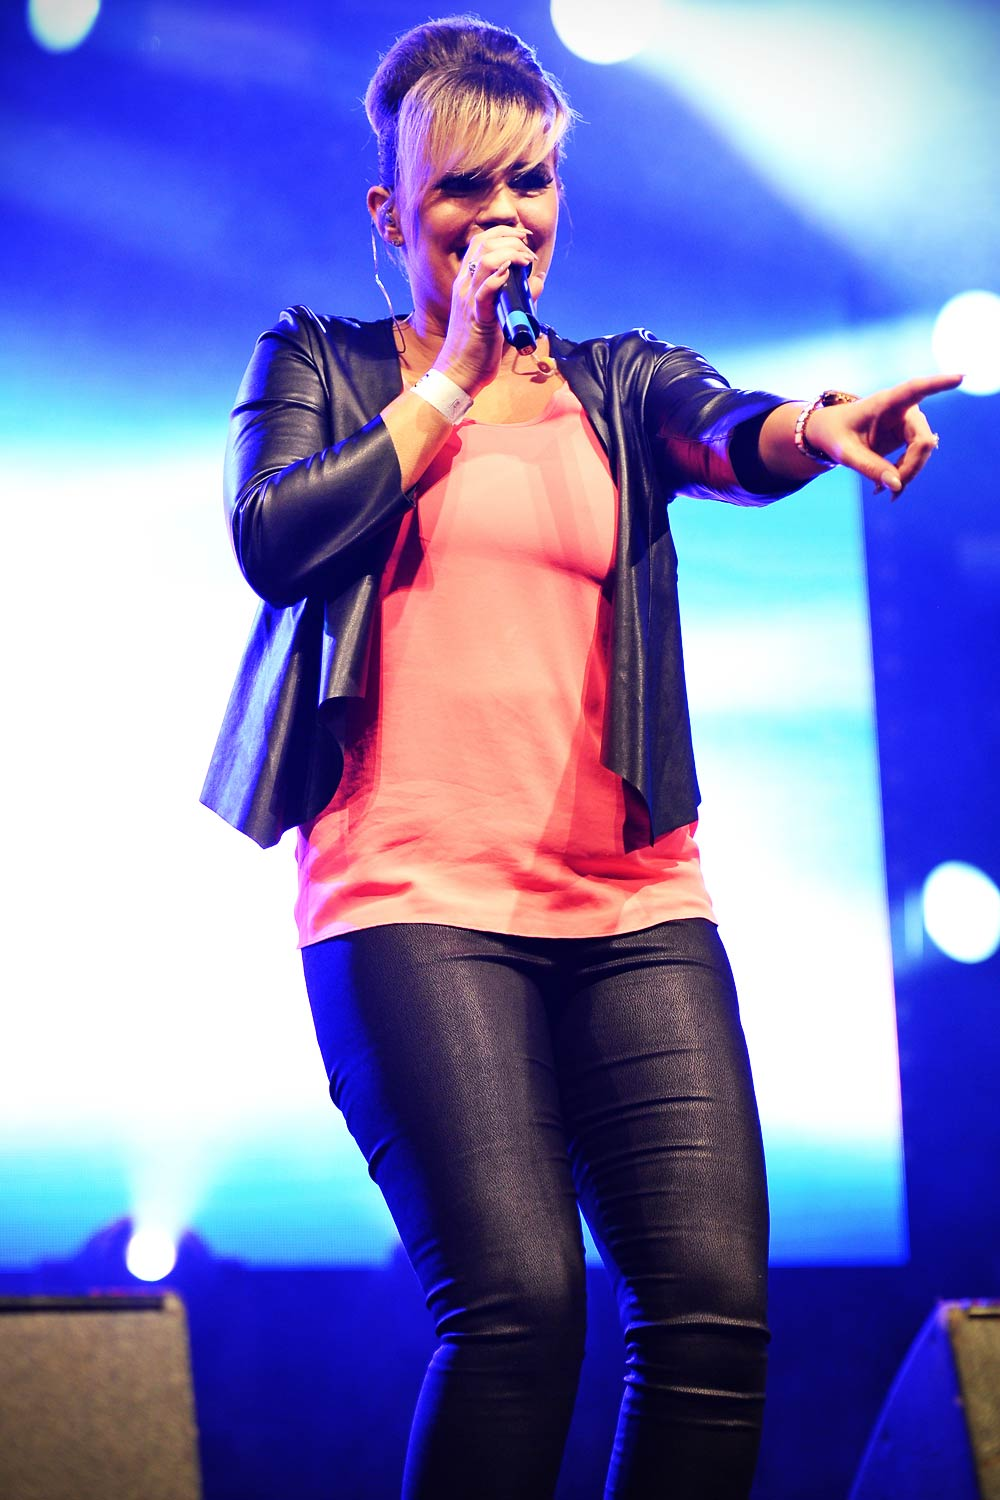 Kerry Katona perform at The Big Weekend Manchester Pride